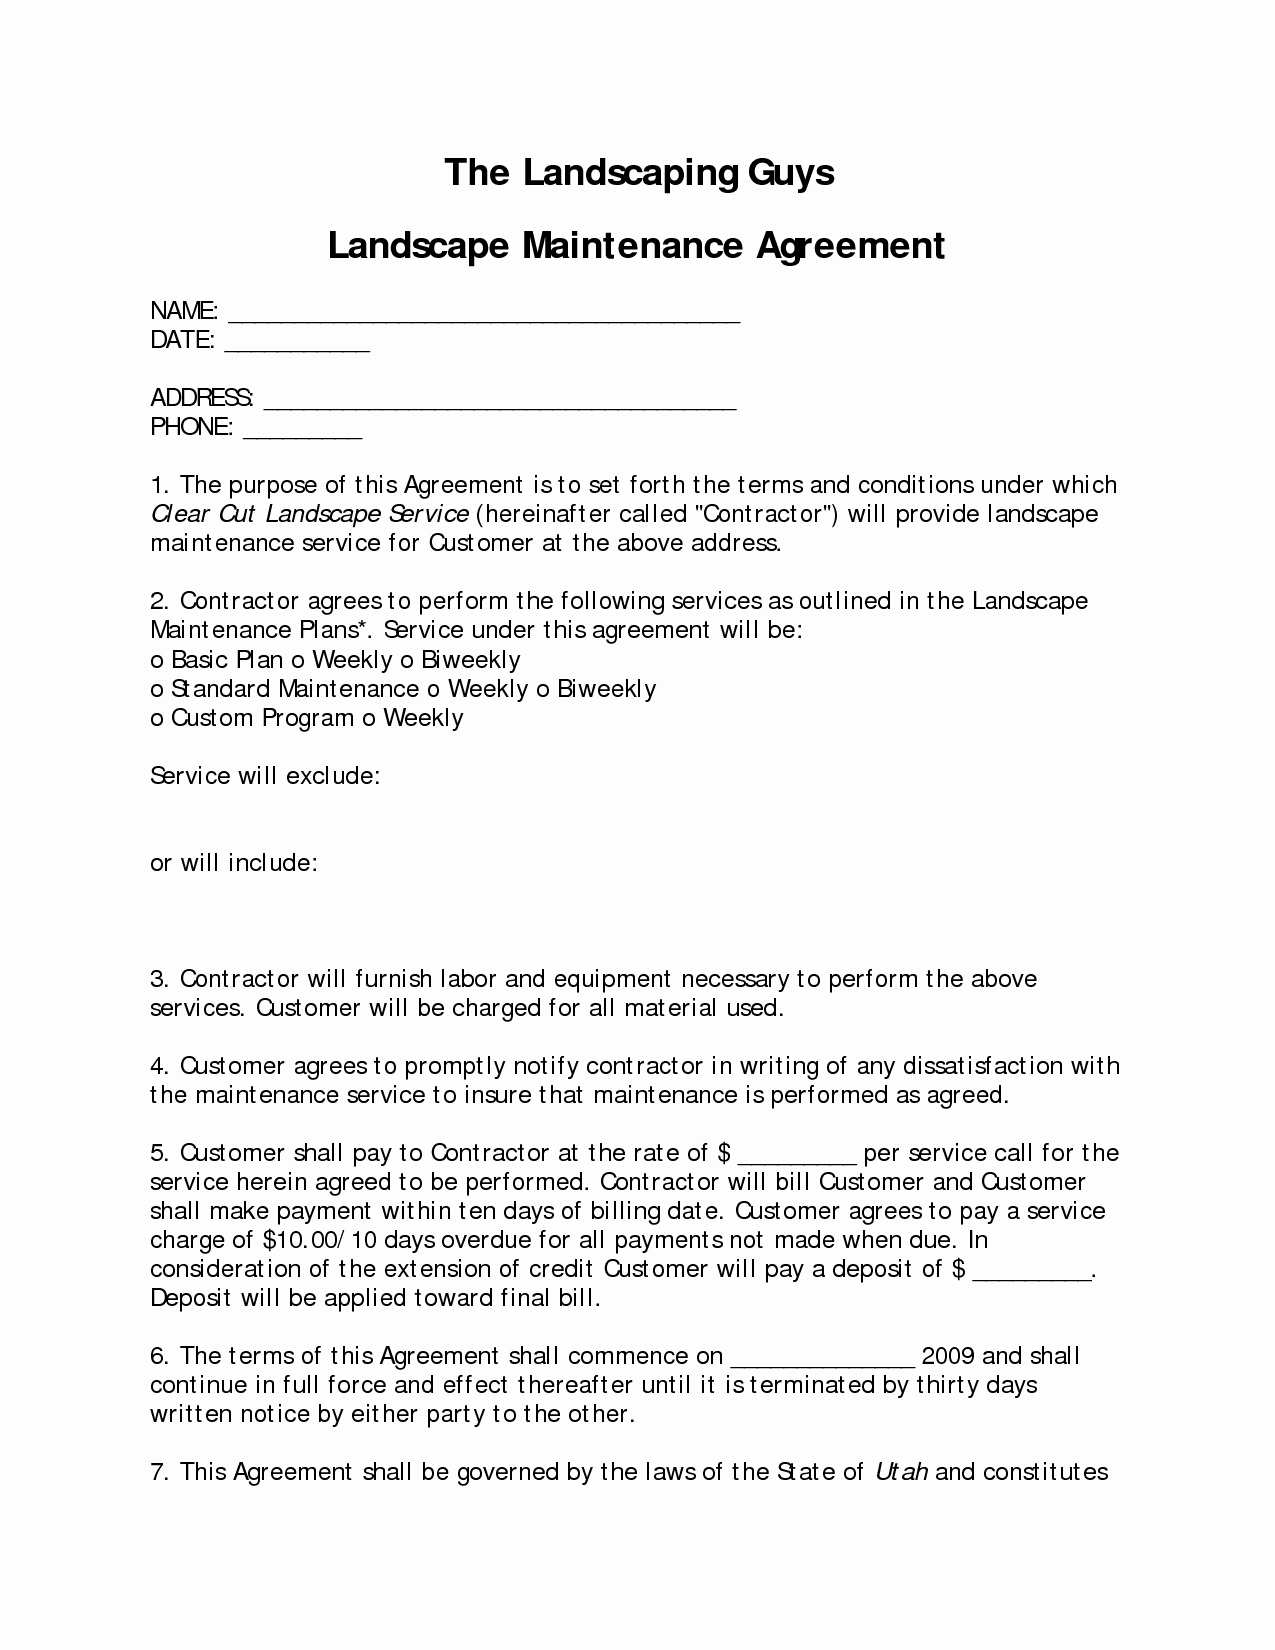 Landscape Maintenance Contract Template Inspirational Marvelous Landscape Contract 9 Landscape Maintenance